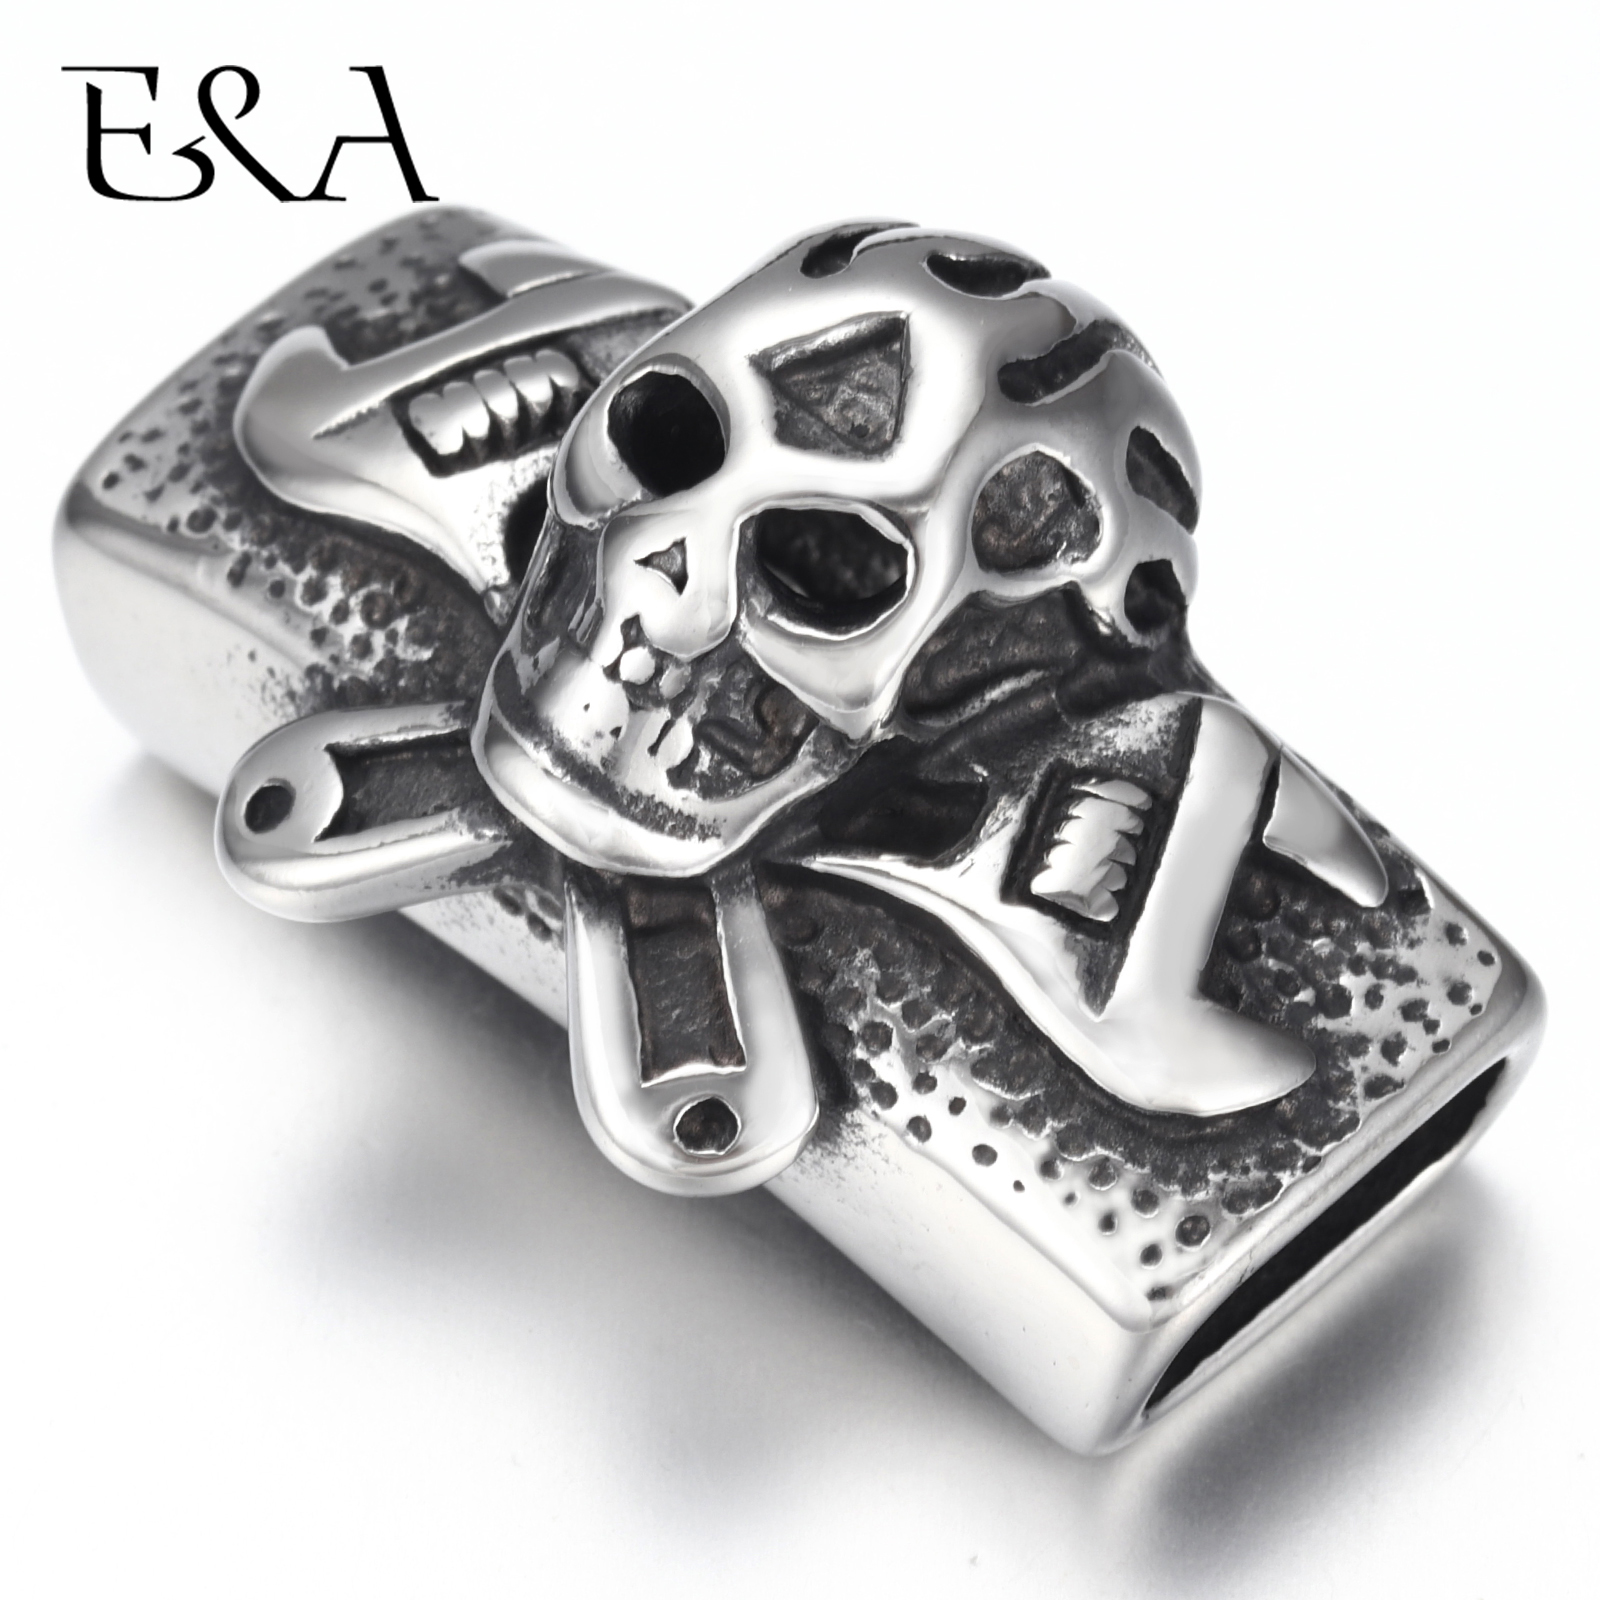 Stainless Steel Slider Beads Punk Motor Skull 12 6mm Hole Slide Charms for Men 39 s Leather Bracelet Jewelry Making DIY Accessories in Beads from Jewelry amp Accessories